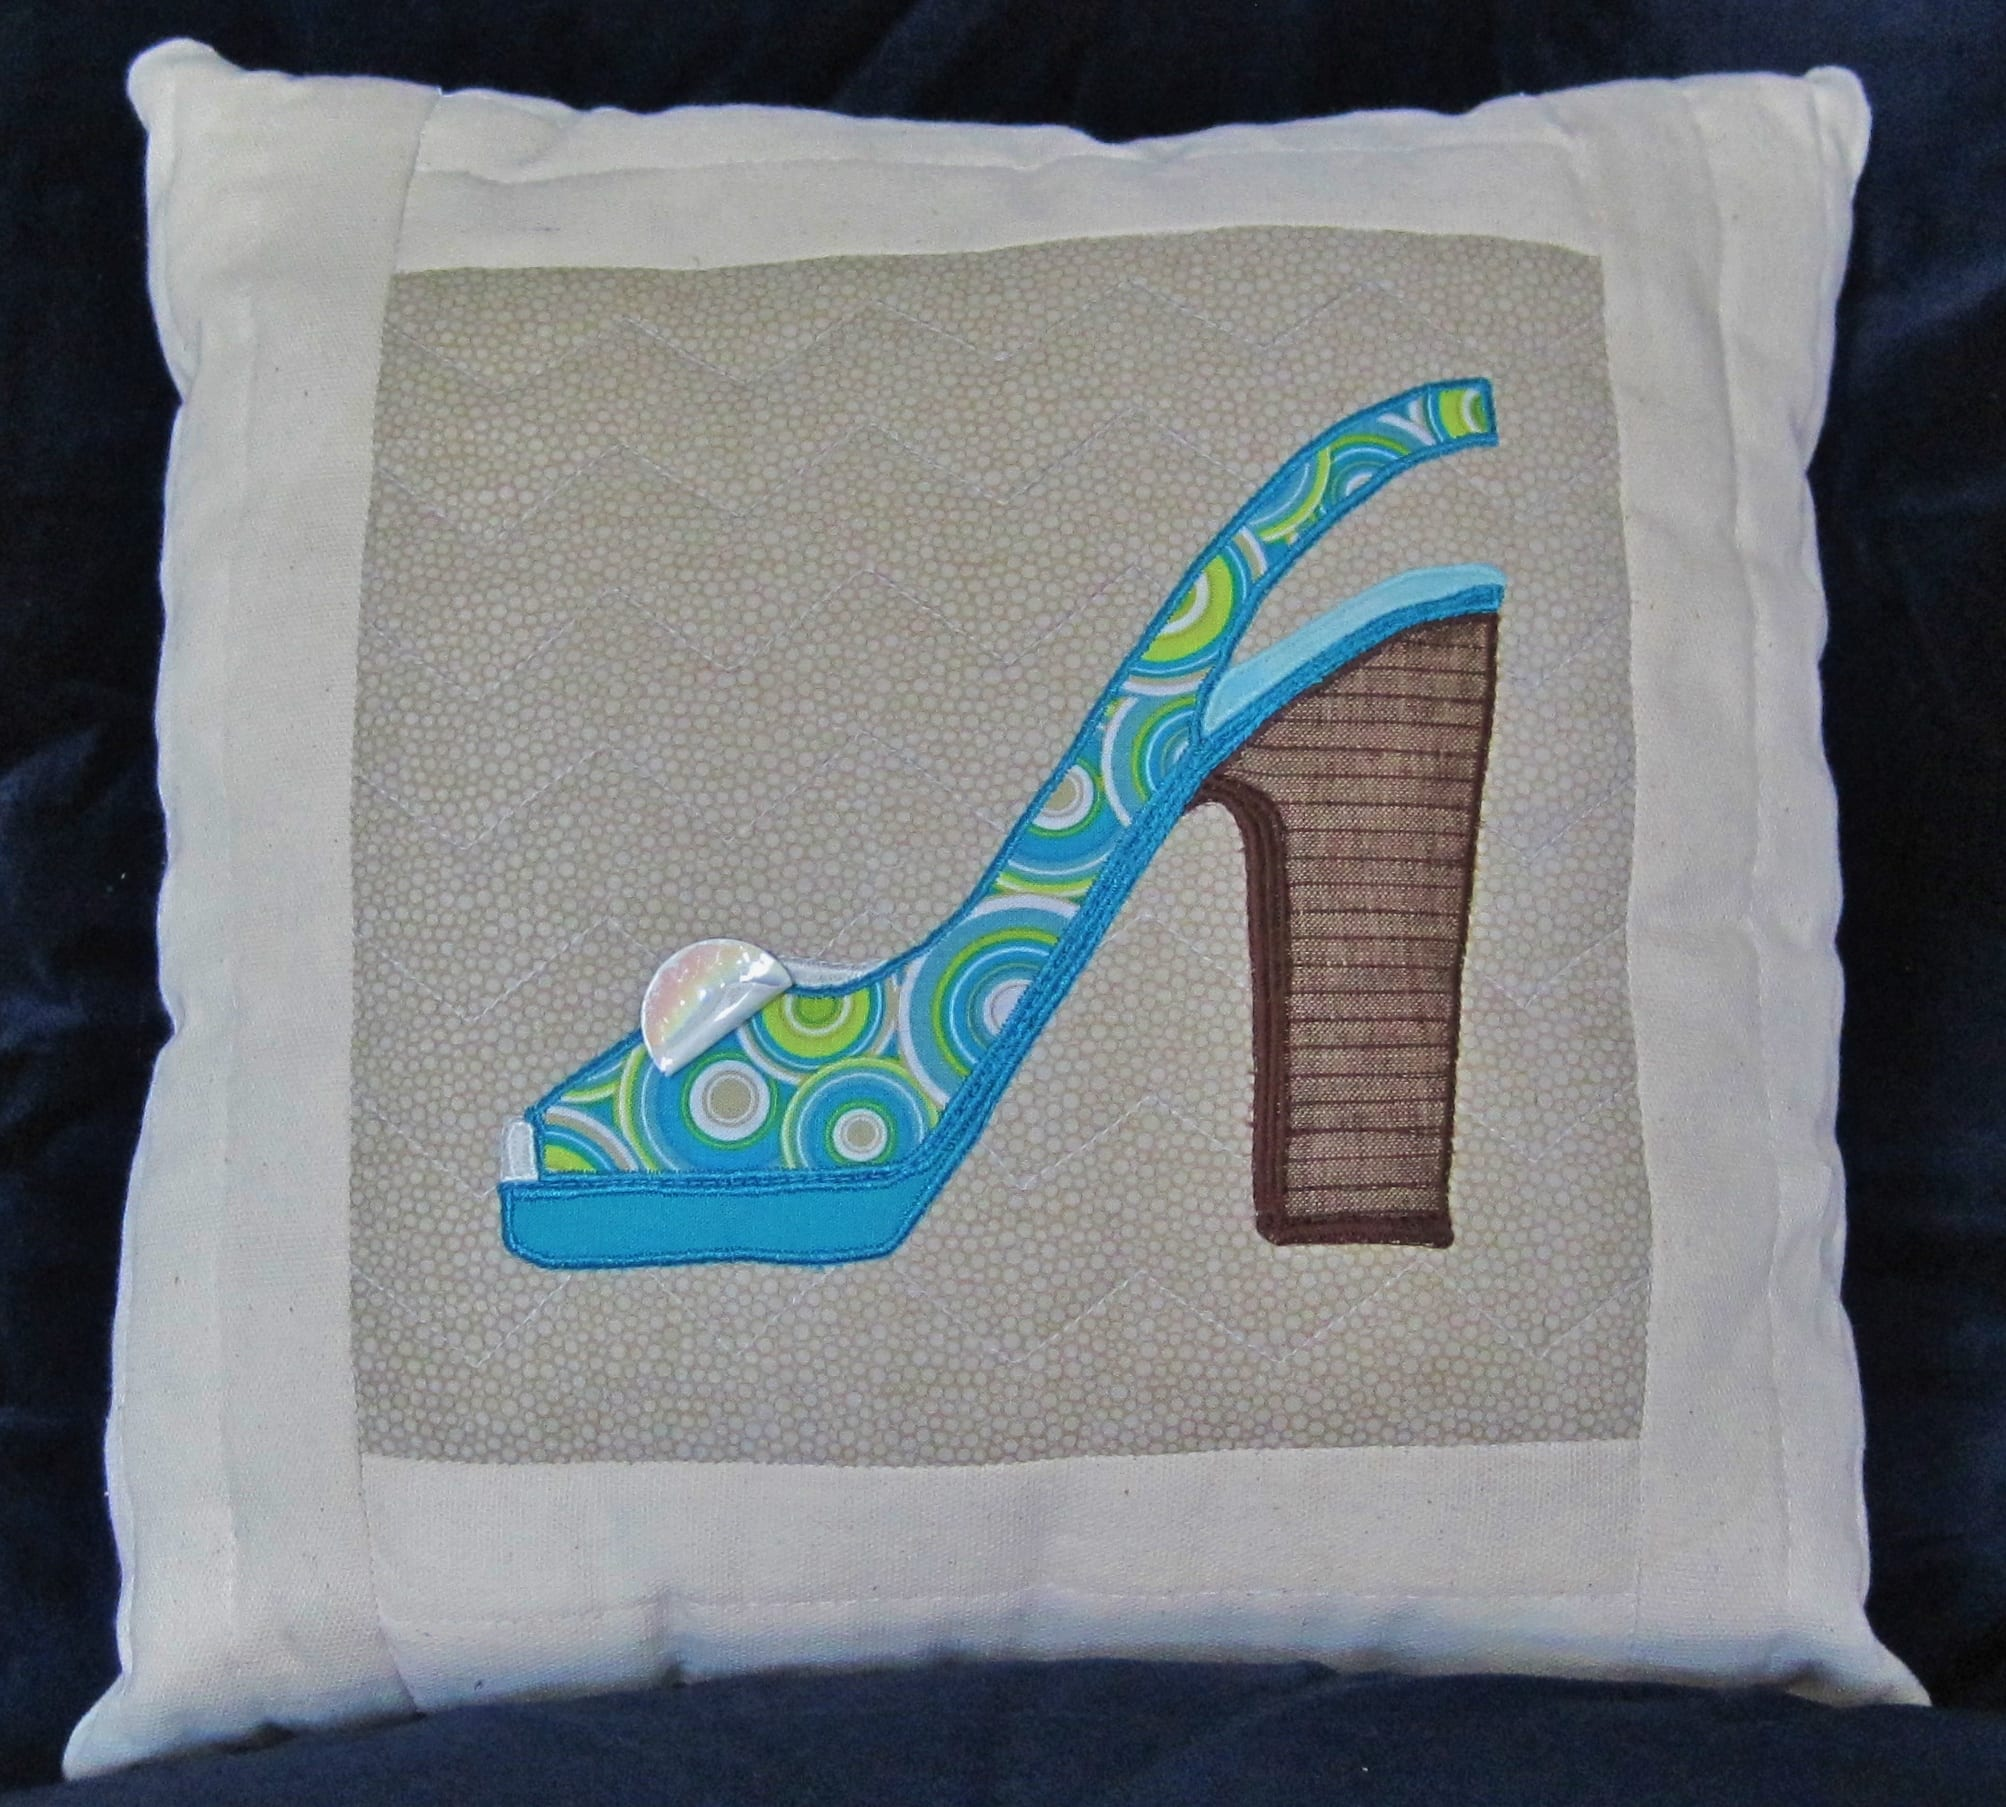 Fashionista Shoe Applique Pattern - Janice Holden Designs on crochet pillow ideas, fall pillow ideas, wuilted pillow ideas, sewing pillow ideas, needle felted pillow ideas, chenille pillow ideas, patchwork pillow ideas, diy pillow ideas, trapunto pillow ideas, easter pillow ideas, christmas pillow ideas, button pillow ideas, handmade pillow ideas,